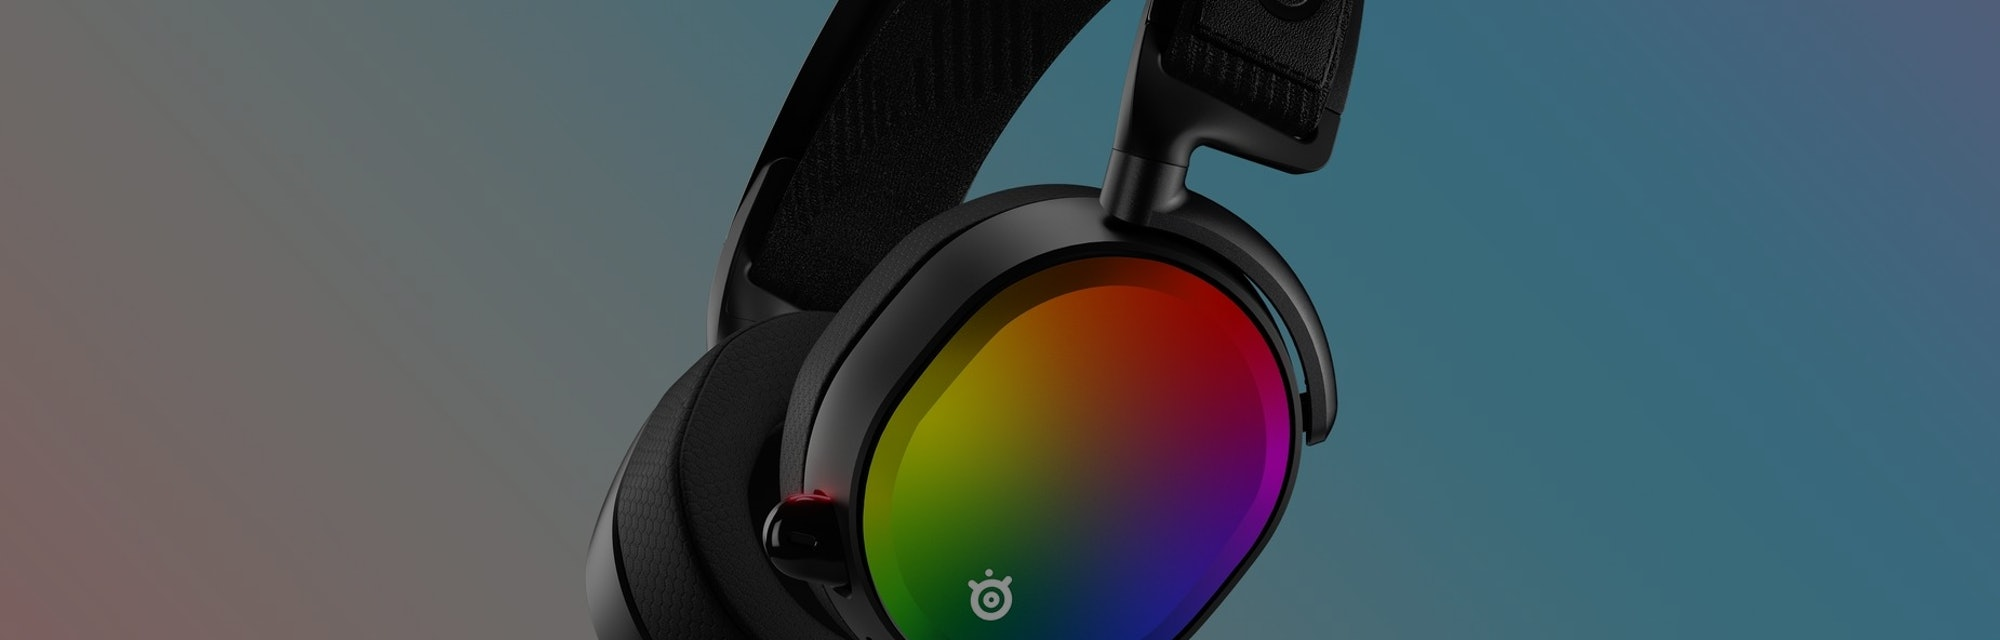 SteelSeries and KontrealFreak are partnering to raise awareness for LGBTQ equality in gaming by donating money to The Trevor Project.